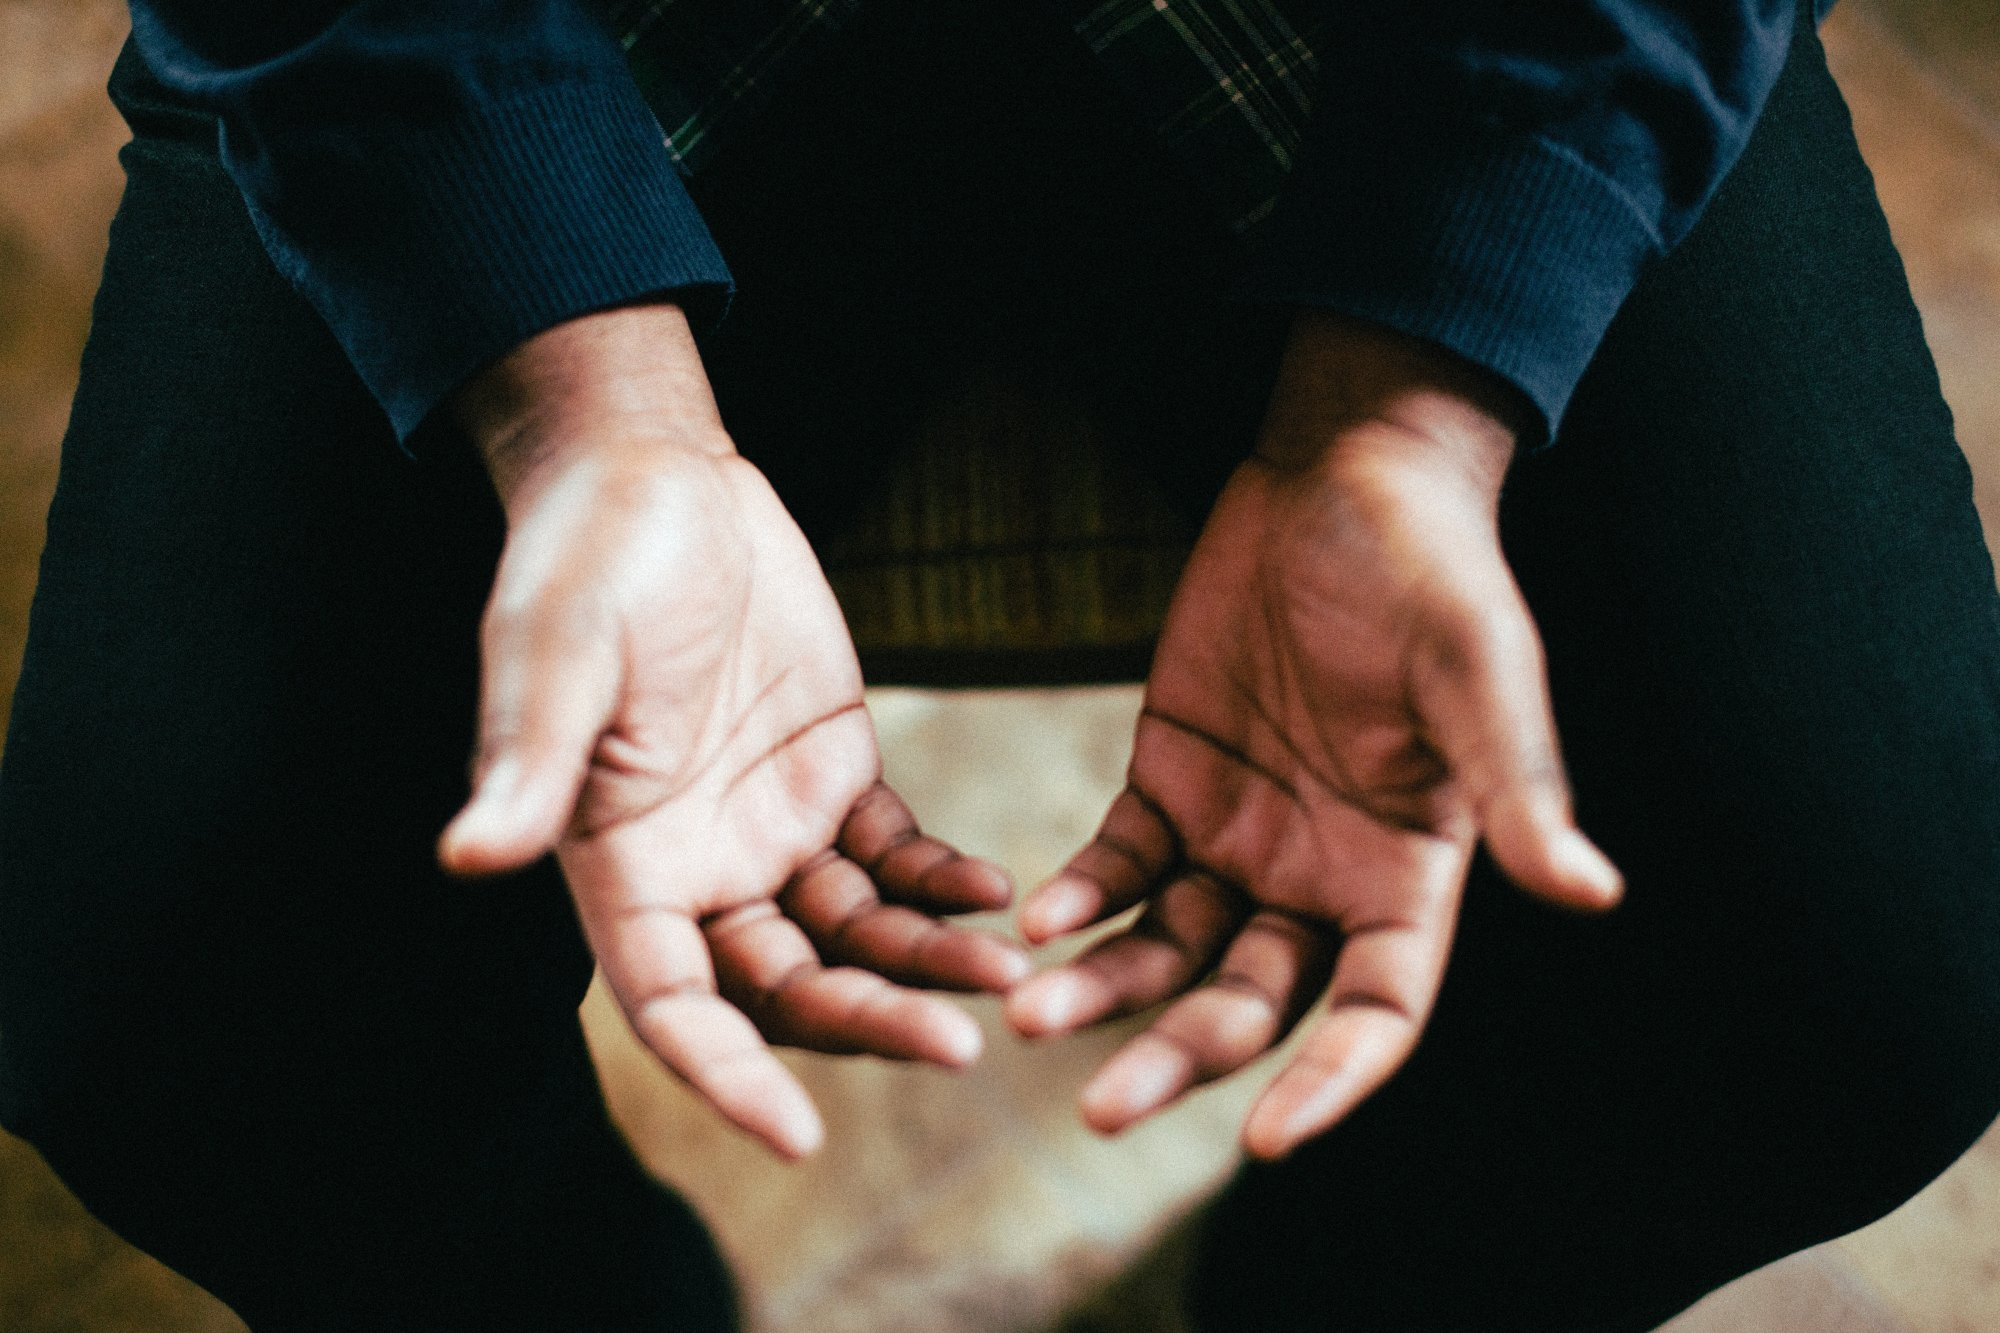 Hands open praying